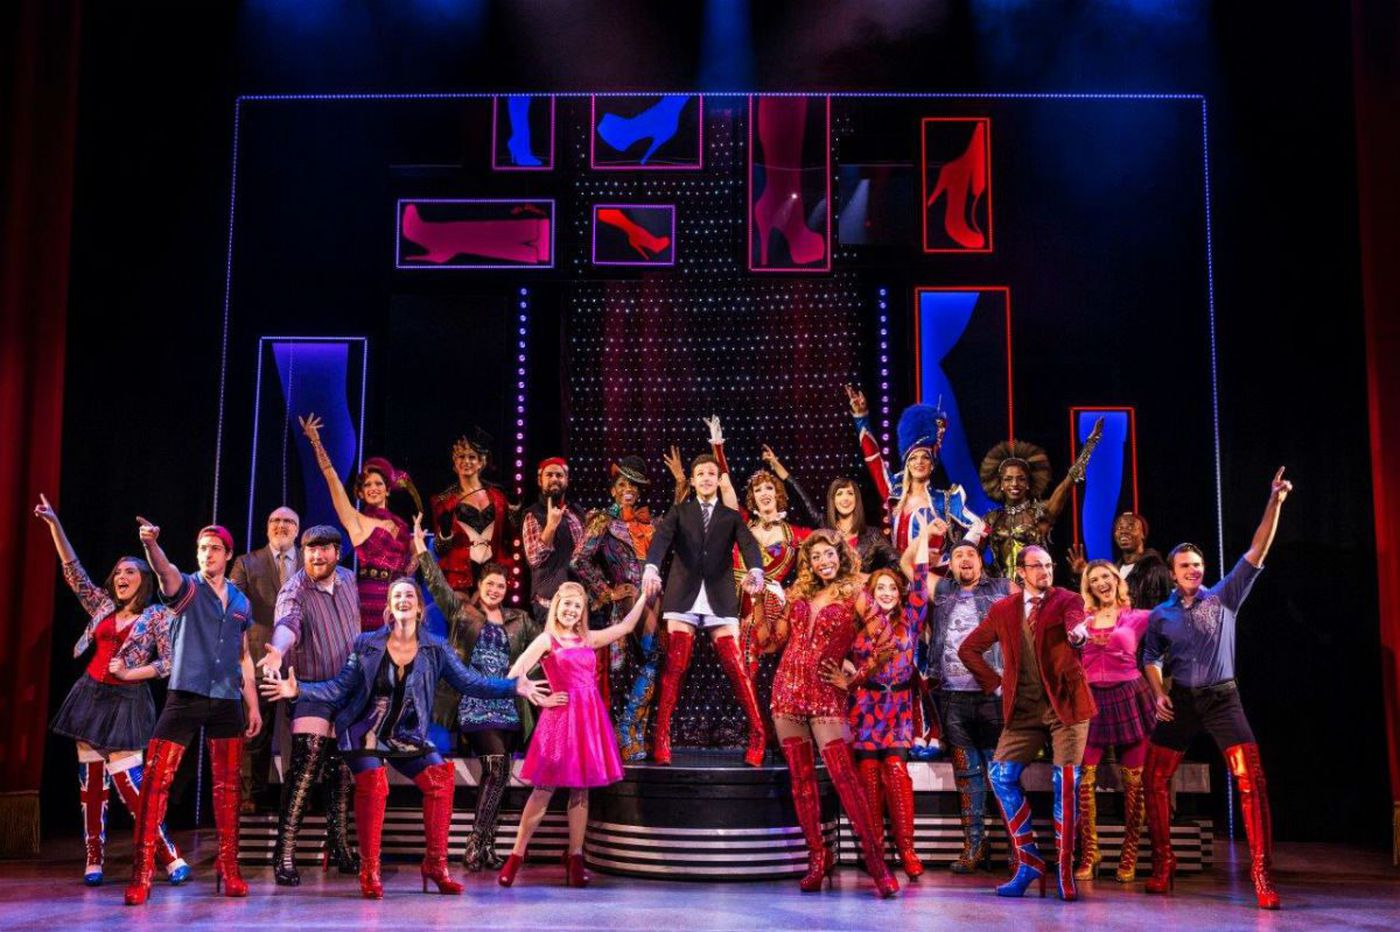 Jos N. Banks kills it as drag queen Lola in 'Kinky Boots' at Academy of Music